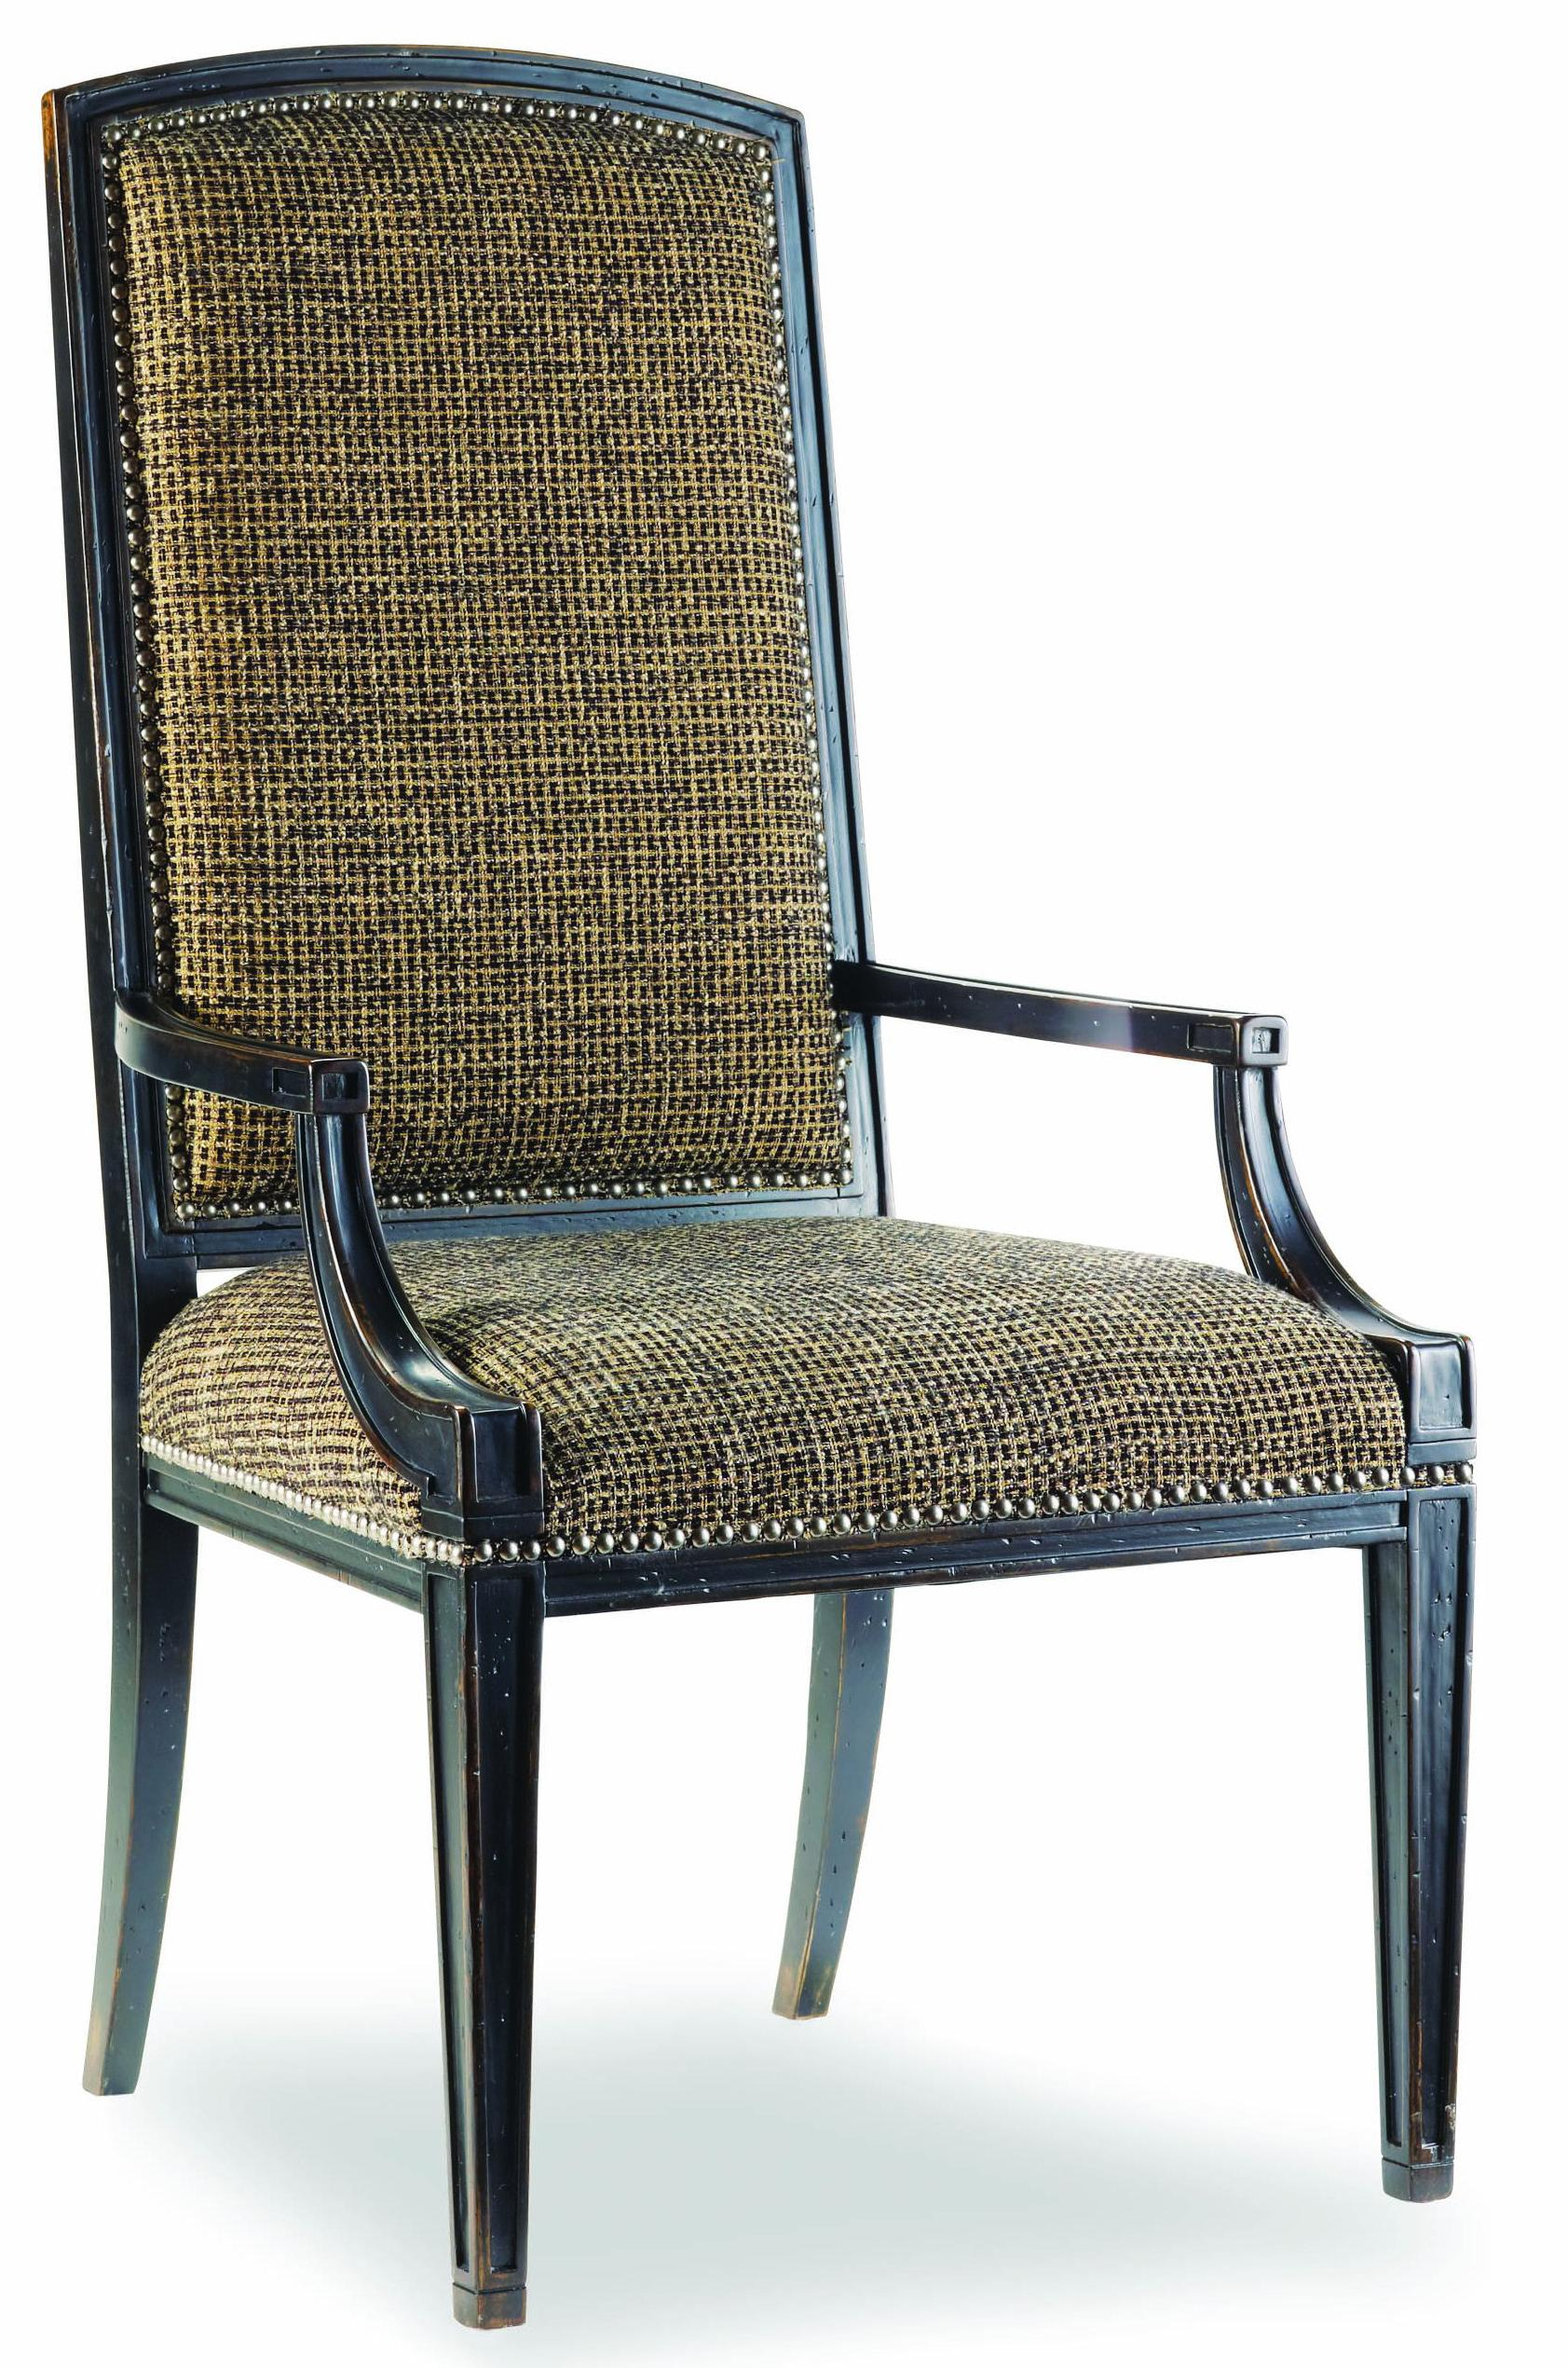 Sanctuary Mirage Arm Chair by Hooker Furniture at Baer's Furniture